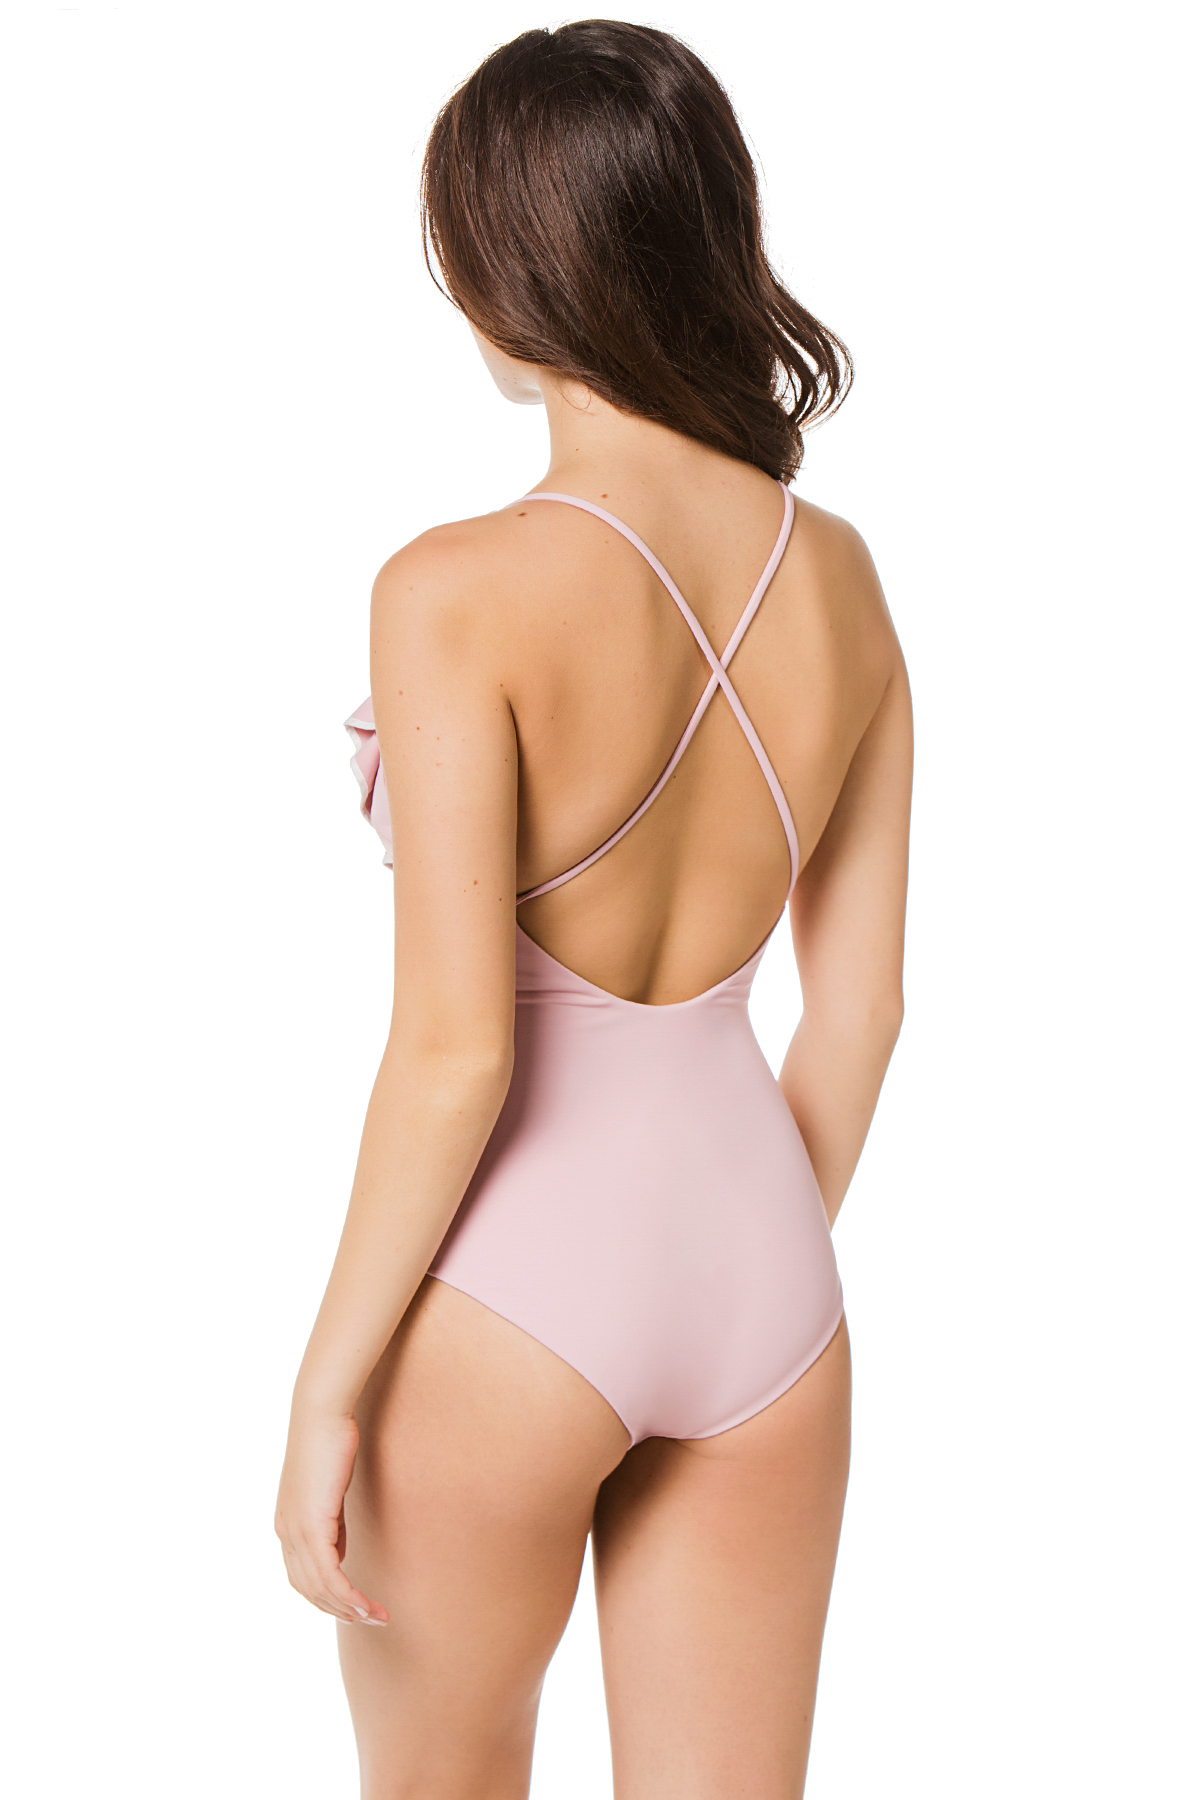 Palisades Asymmetrical One Piece Swimsuit - Lavender 2